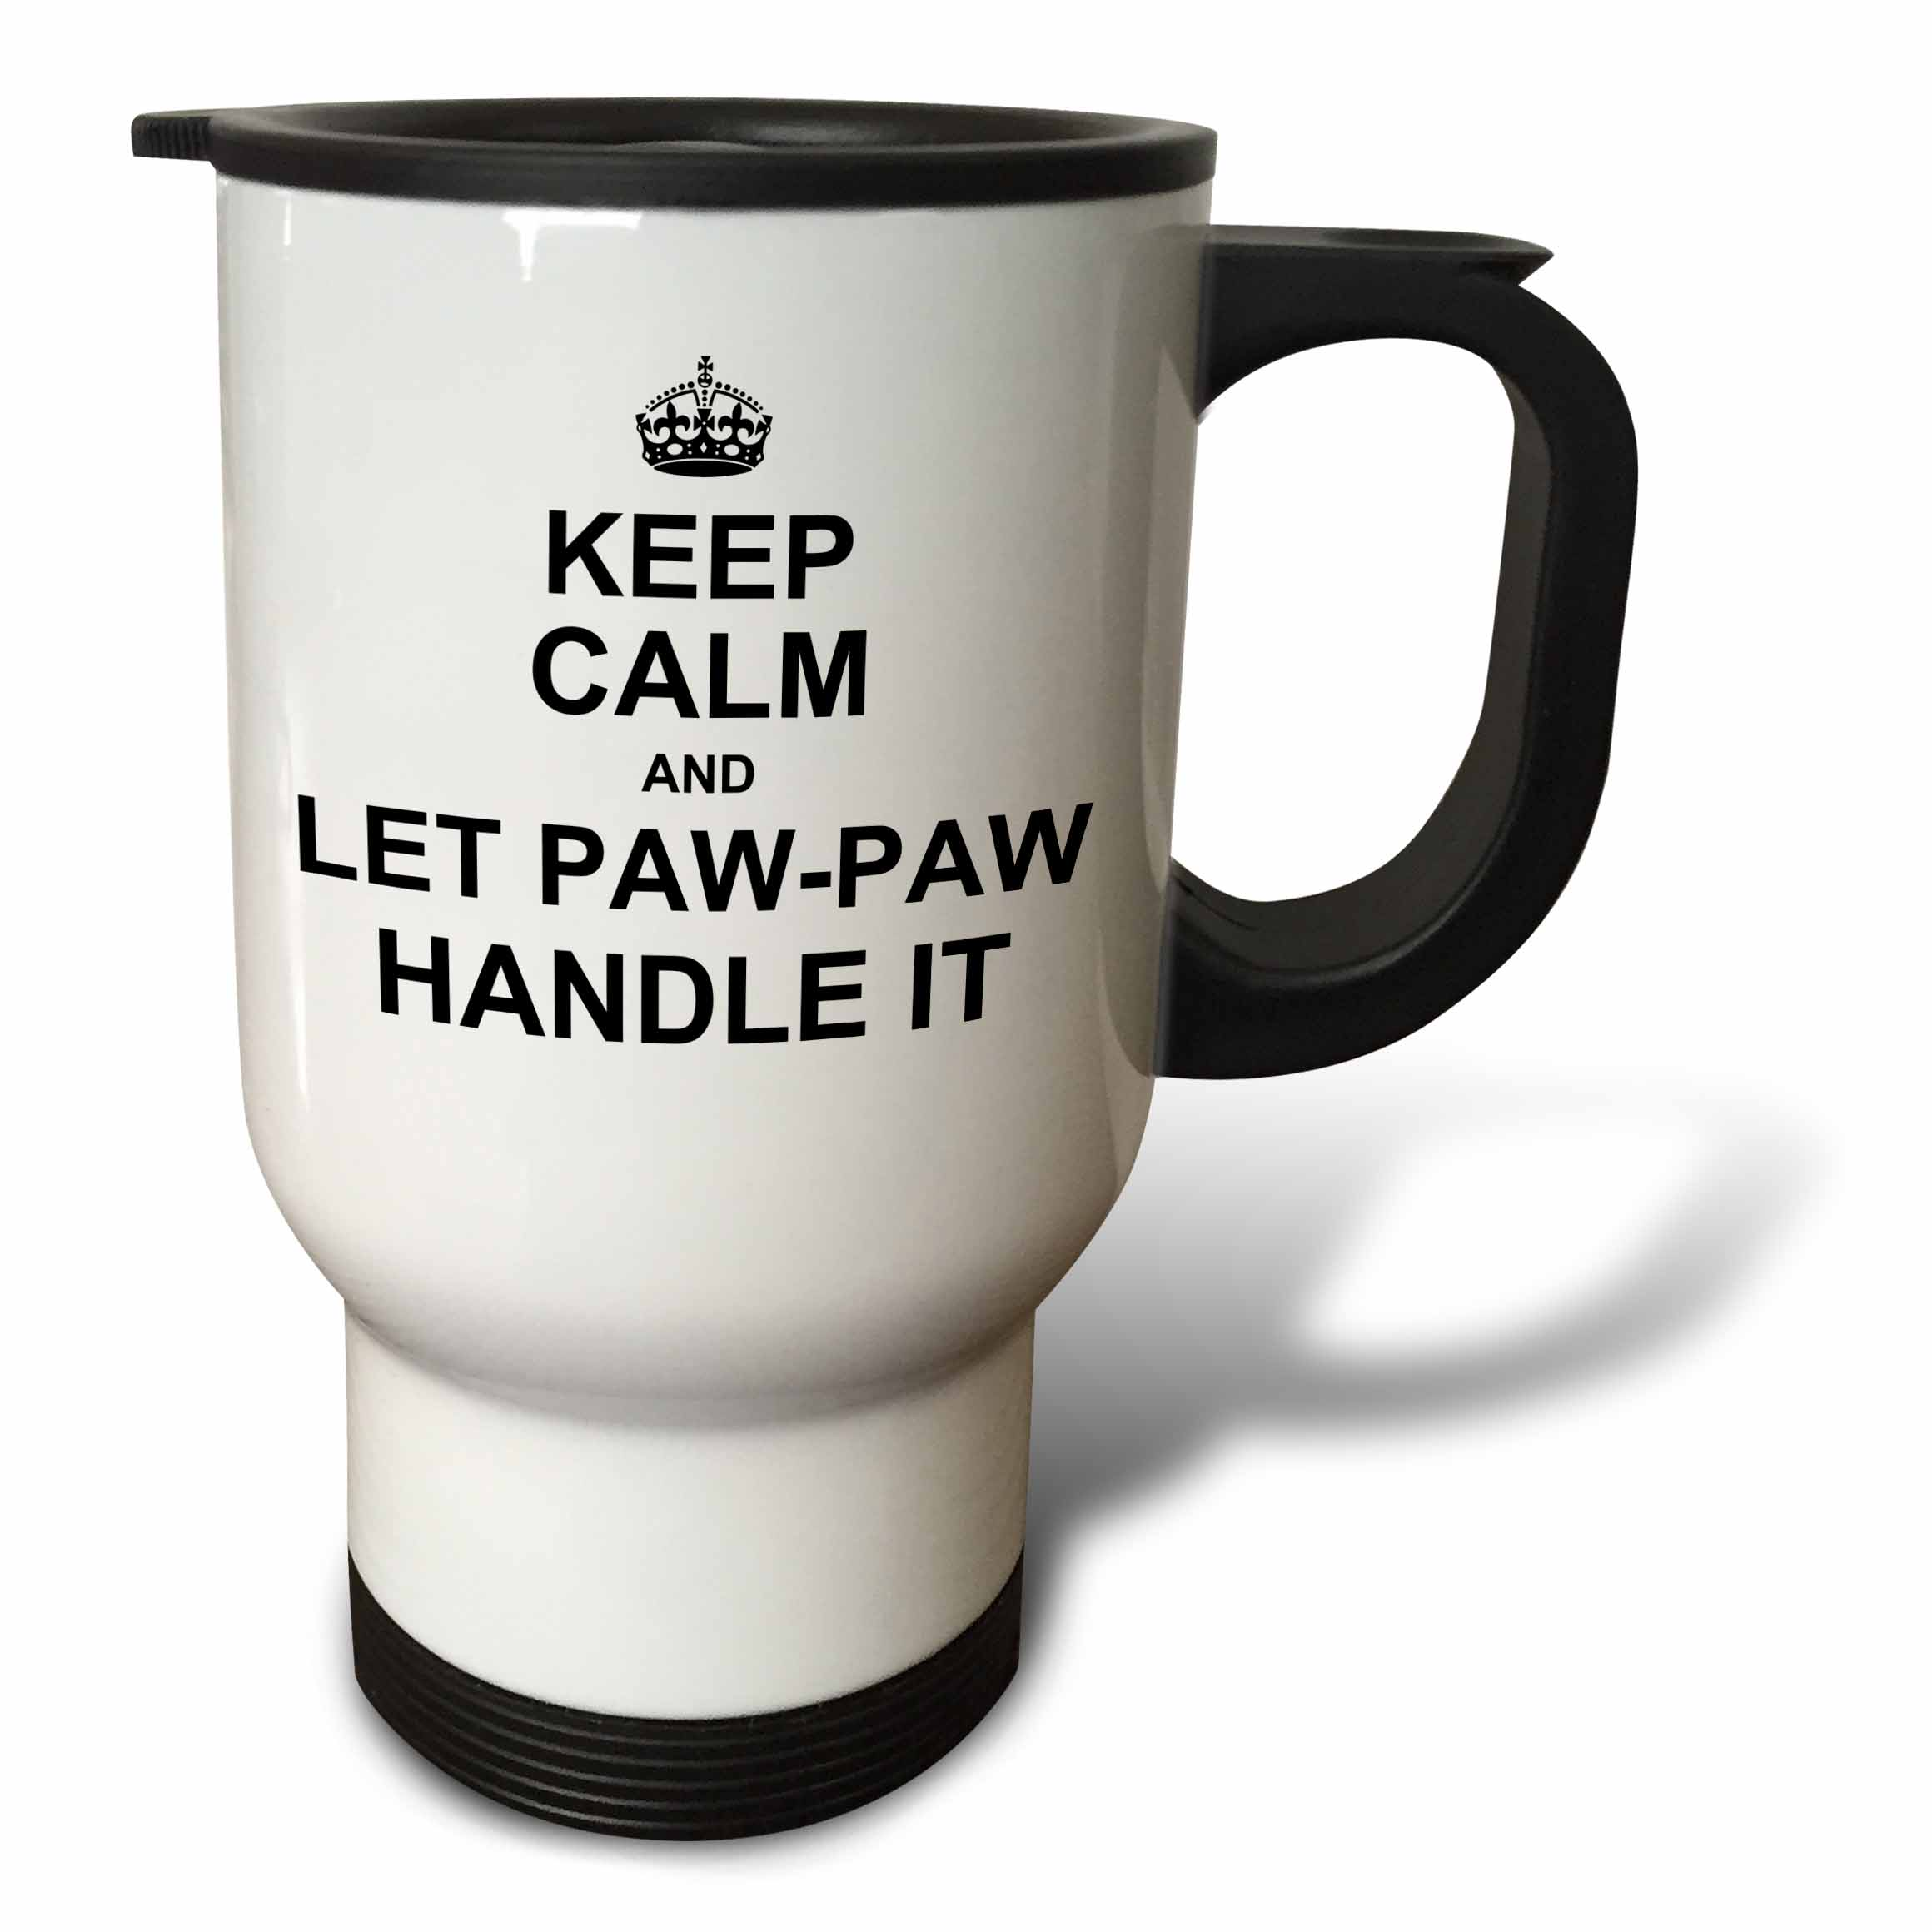 3dRose Keep Calm and let Paw Paw Handle it funny grandpa PawPaw humor gift - Travel Mug, 14-ounce, Stainless Steel